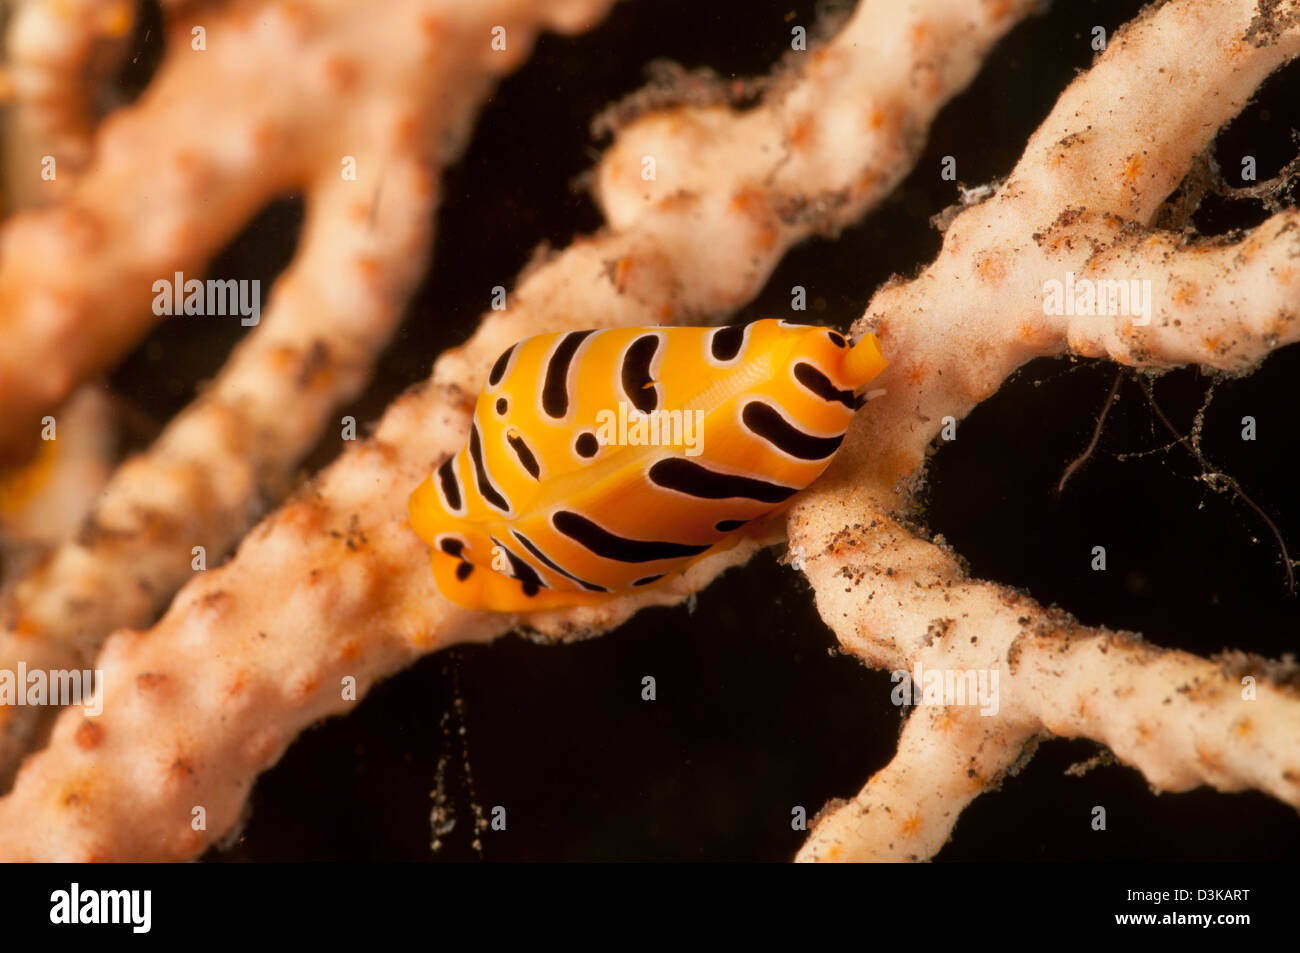 Yellow and black striped tiger cowrie on yellow sea fan, Bali, Indonesia. Stock Photo